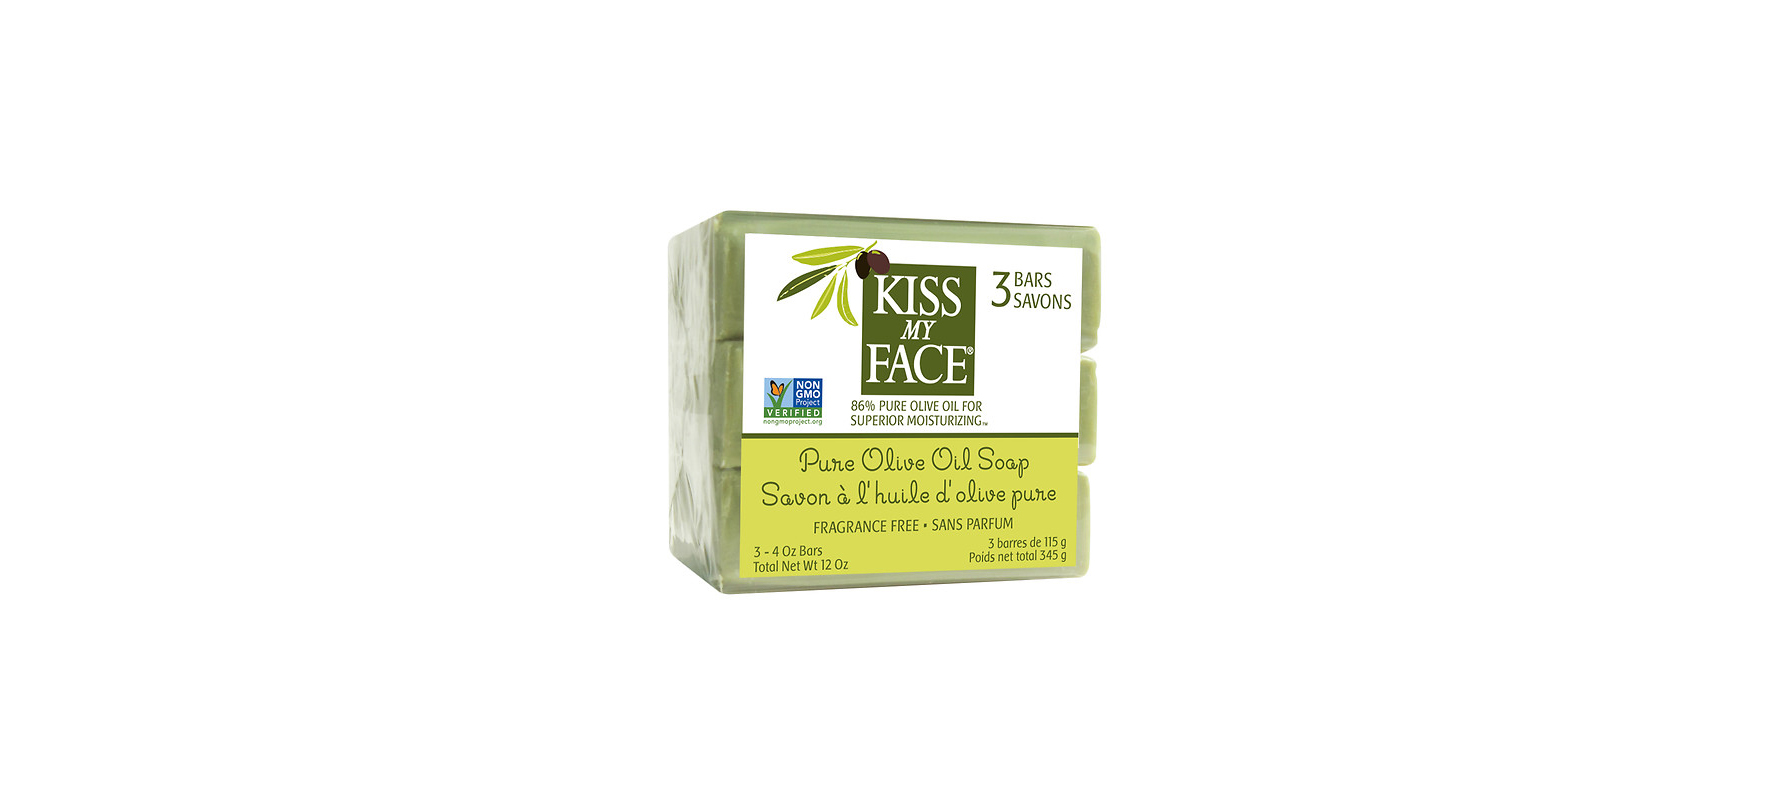 2-fragrance-free-soap